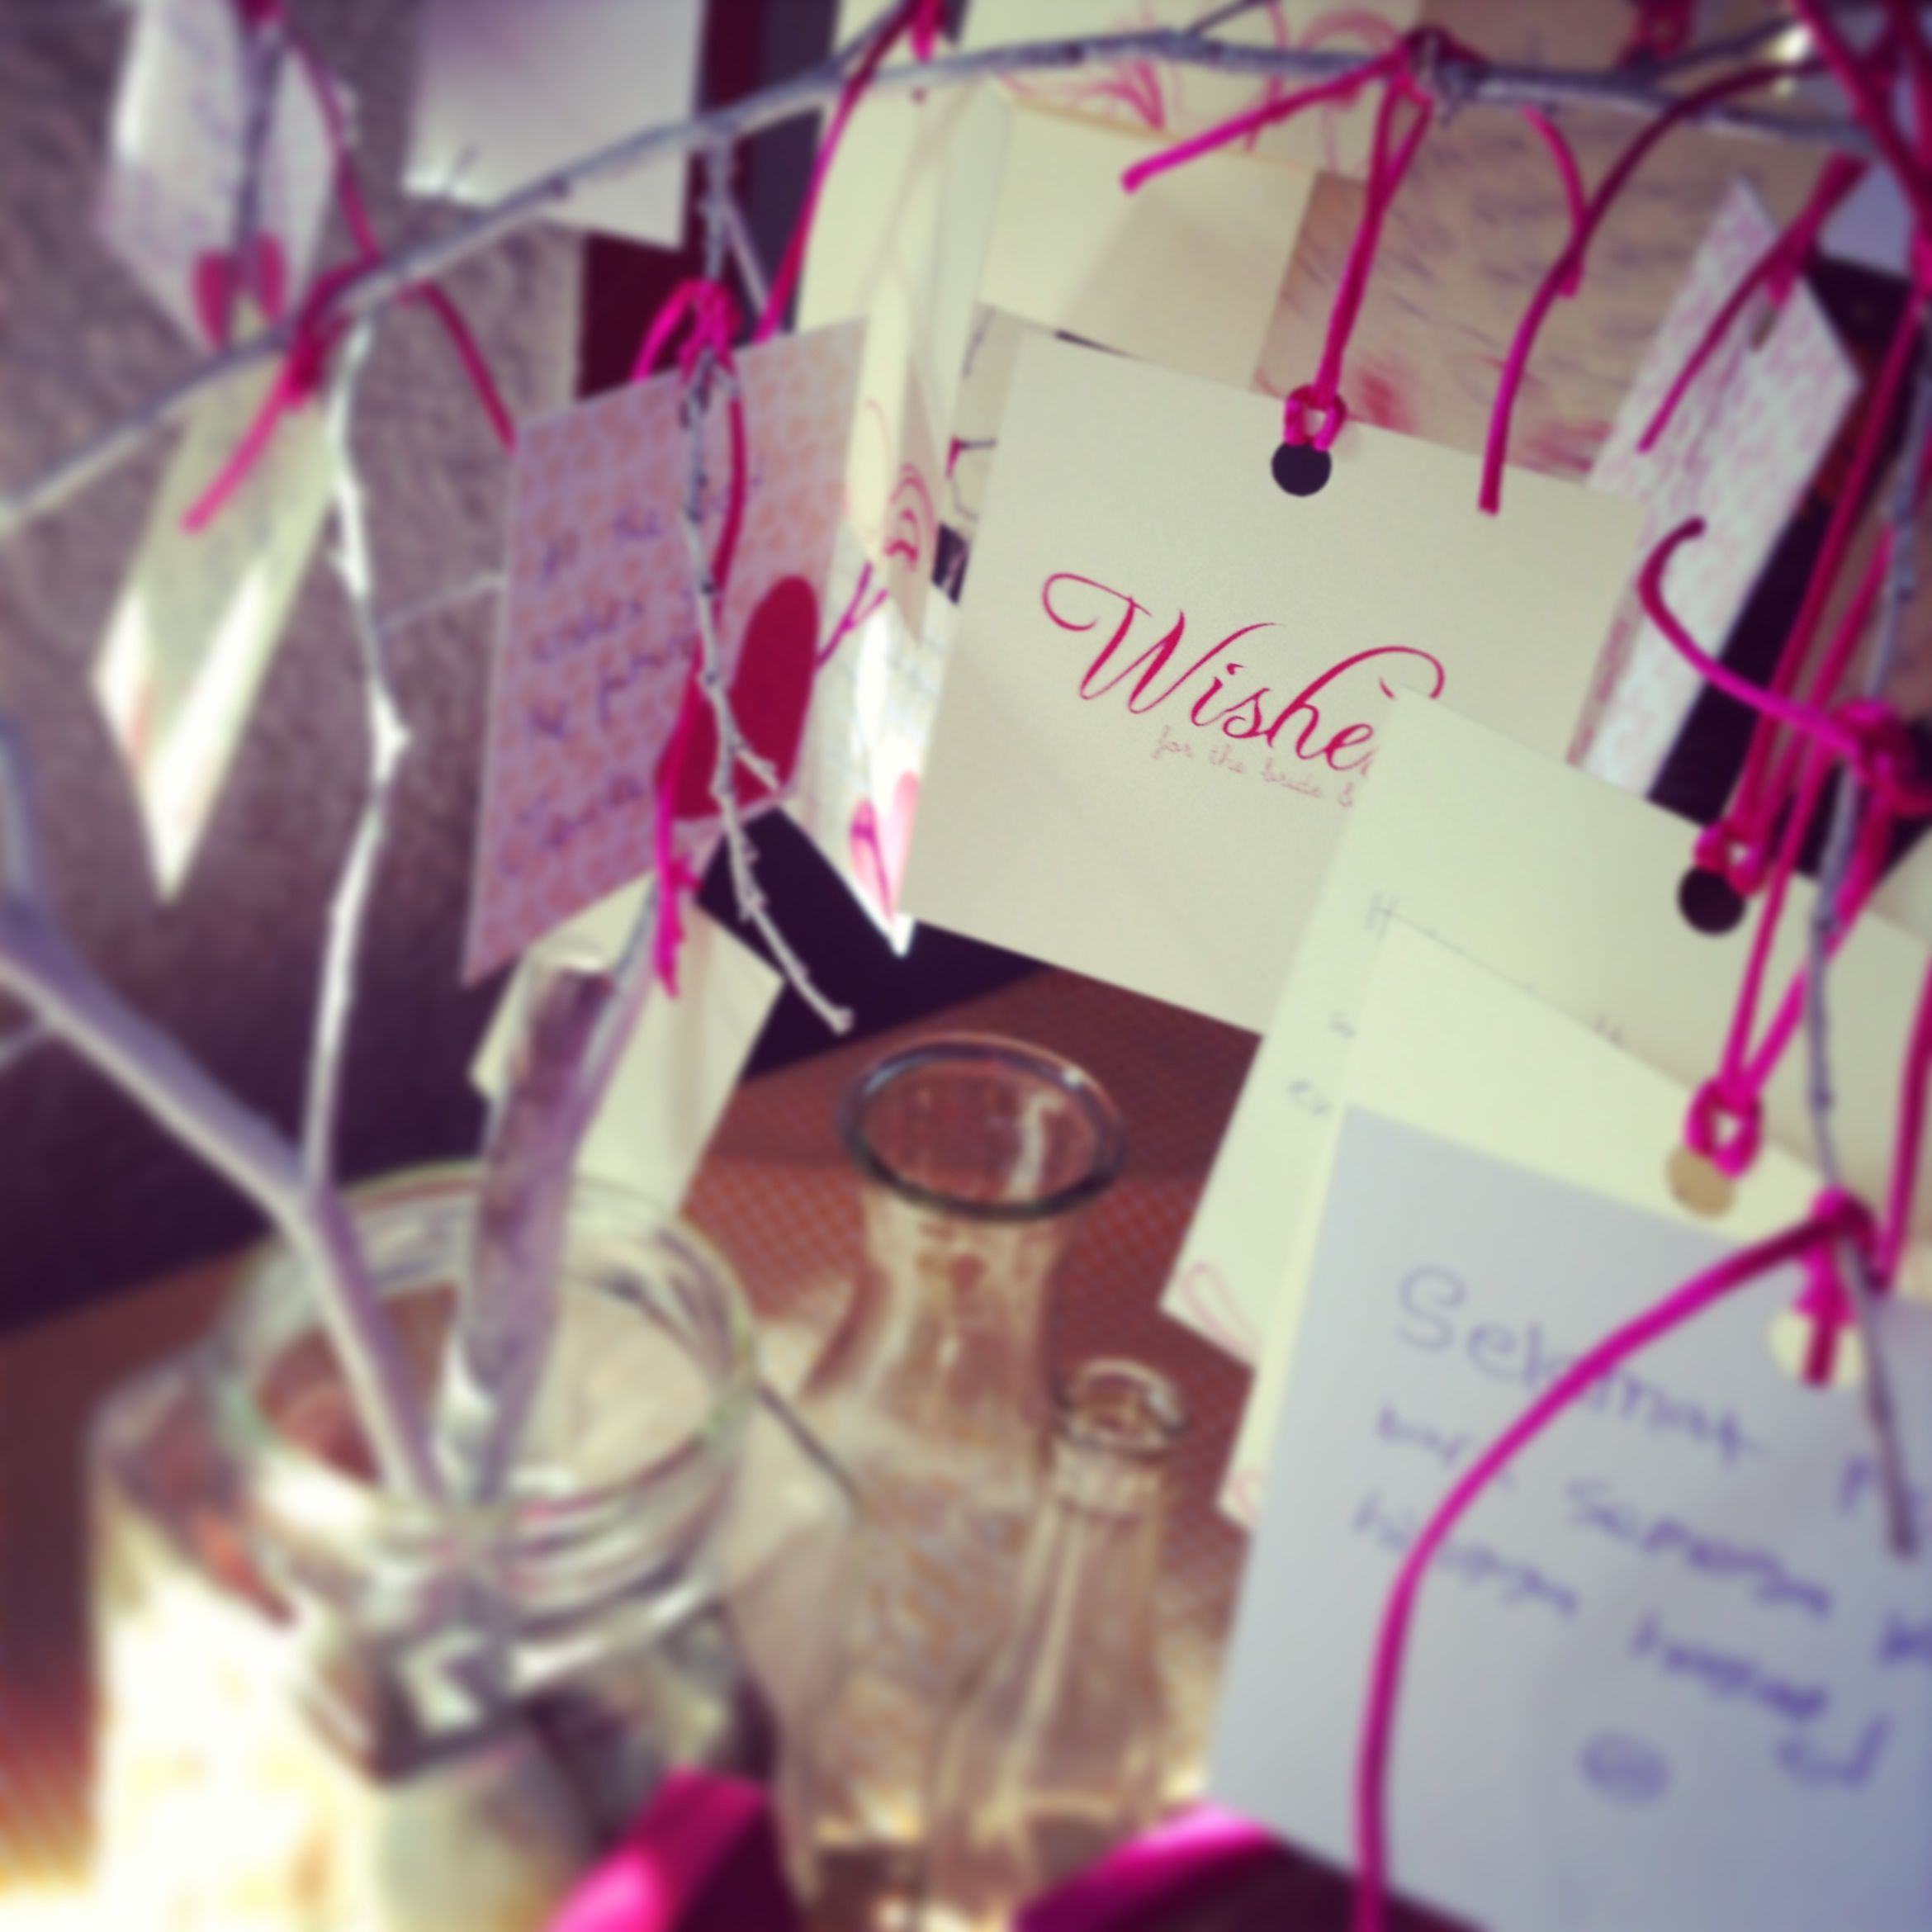 Wishes for the bride & groom